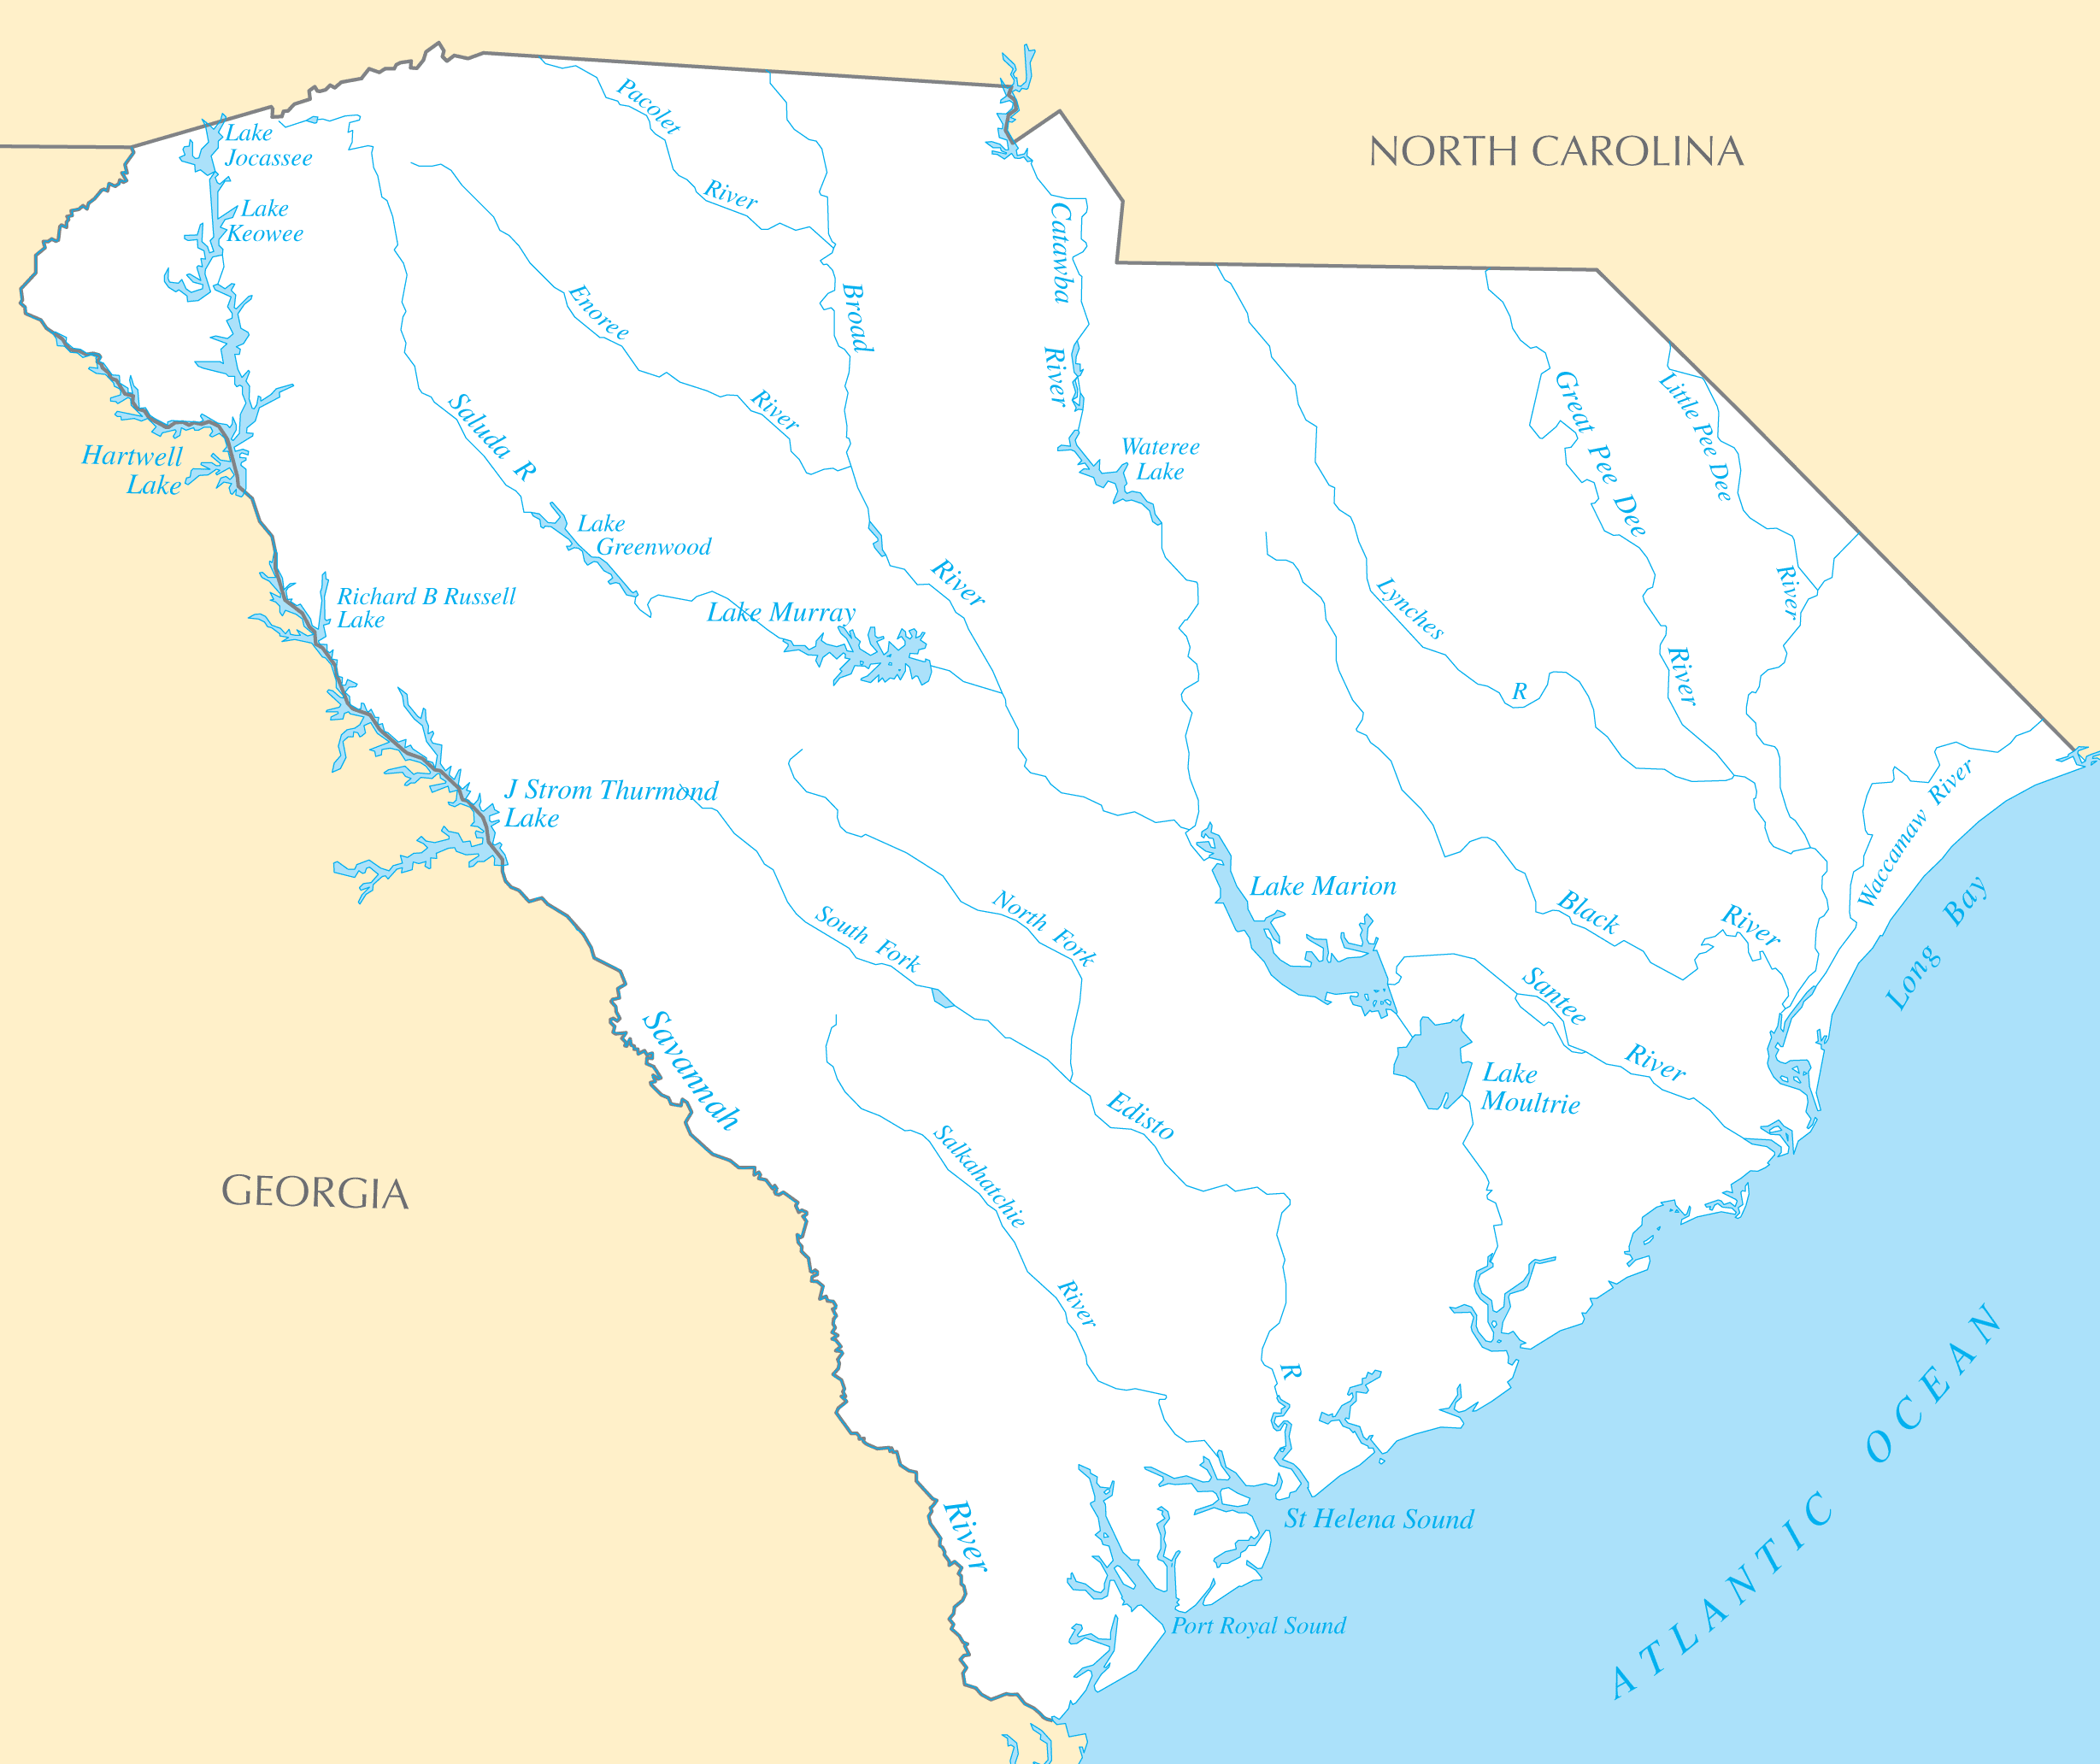 South Carolina Rivers And Lakes large map